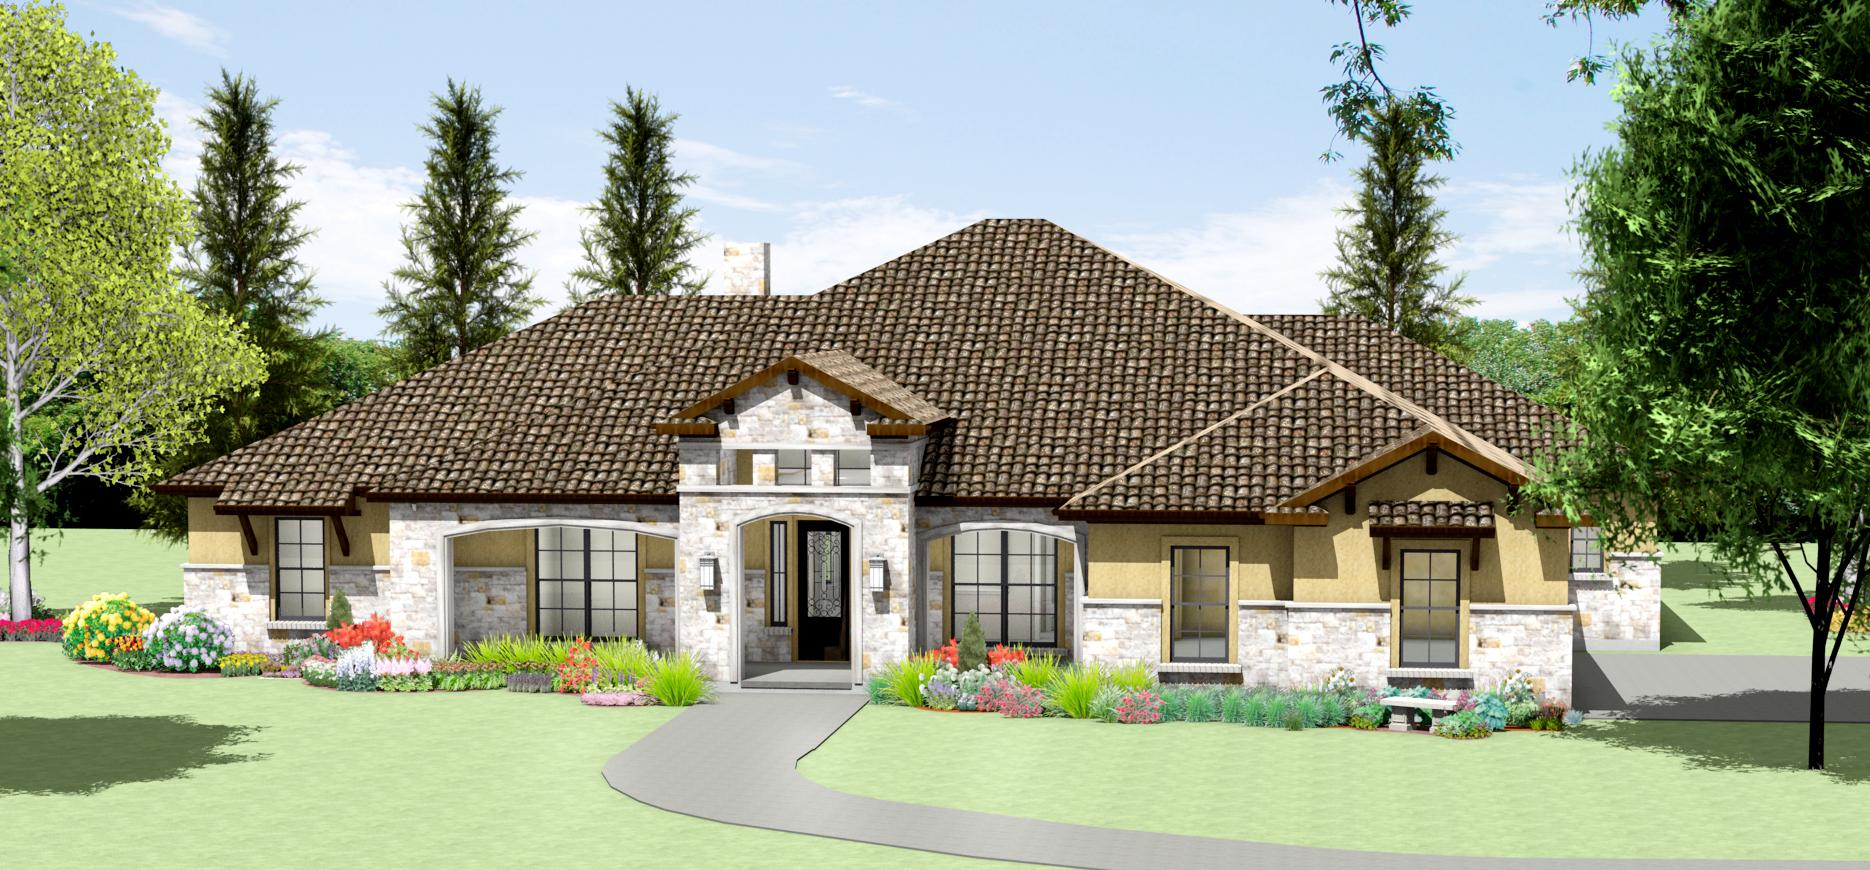 S3450r texas tuscan design texas house plans over 700 for South texas house plans